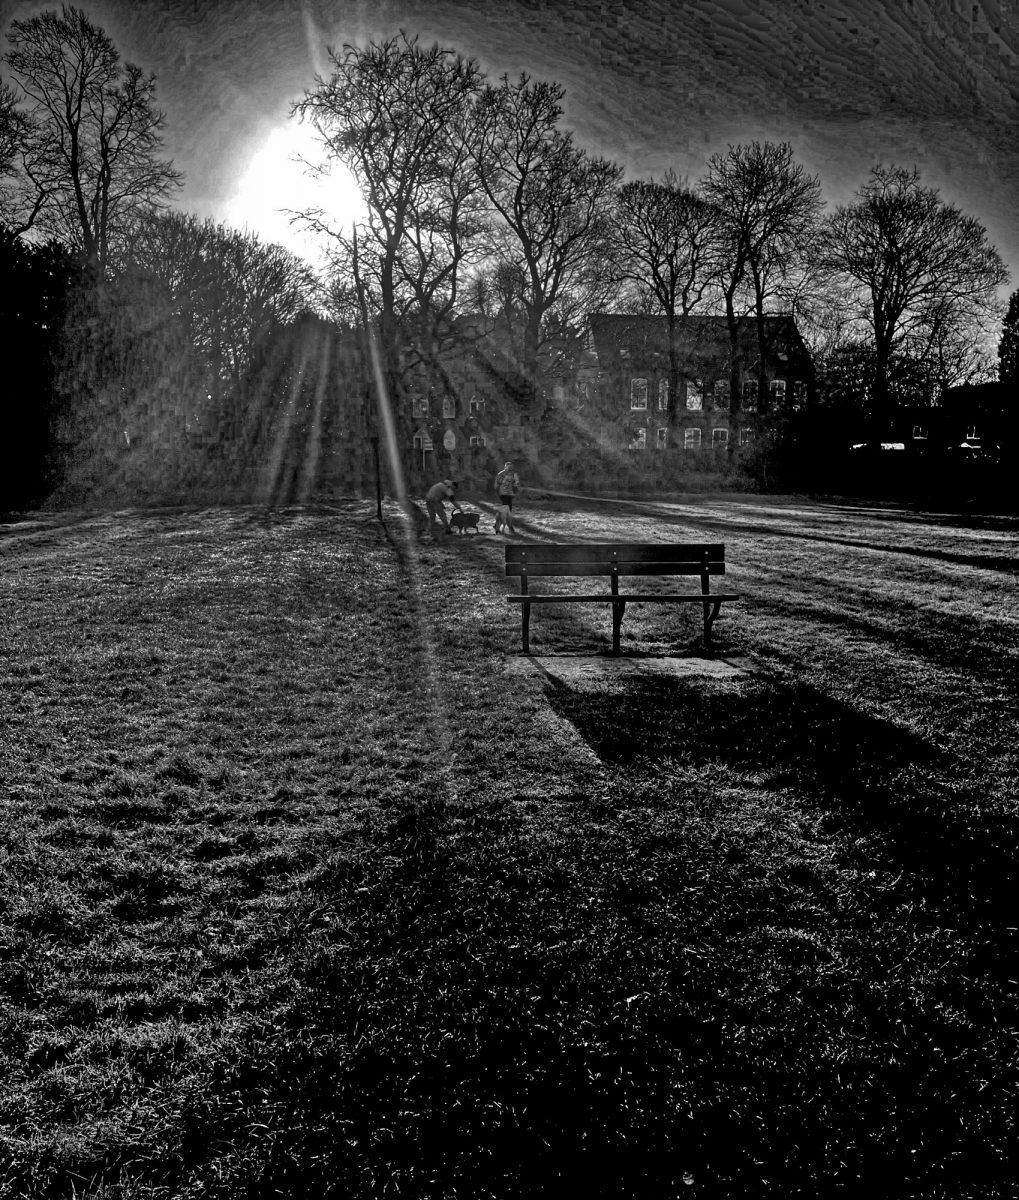 Black & White Photograph. An empty bench in a Derbyshire park.